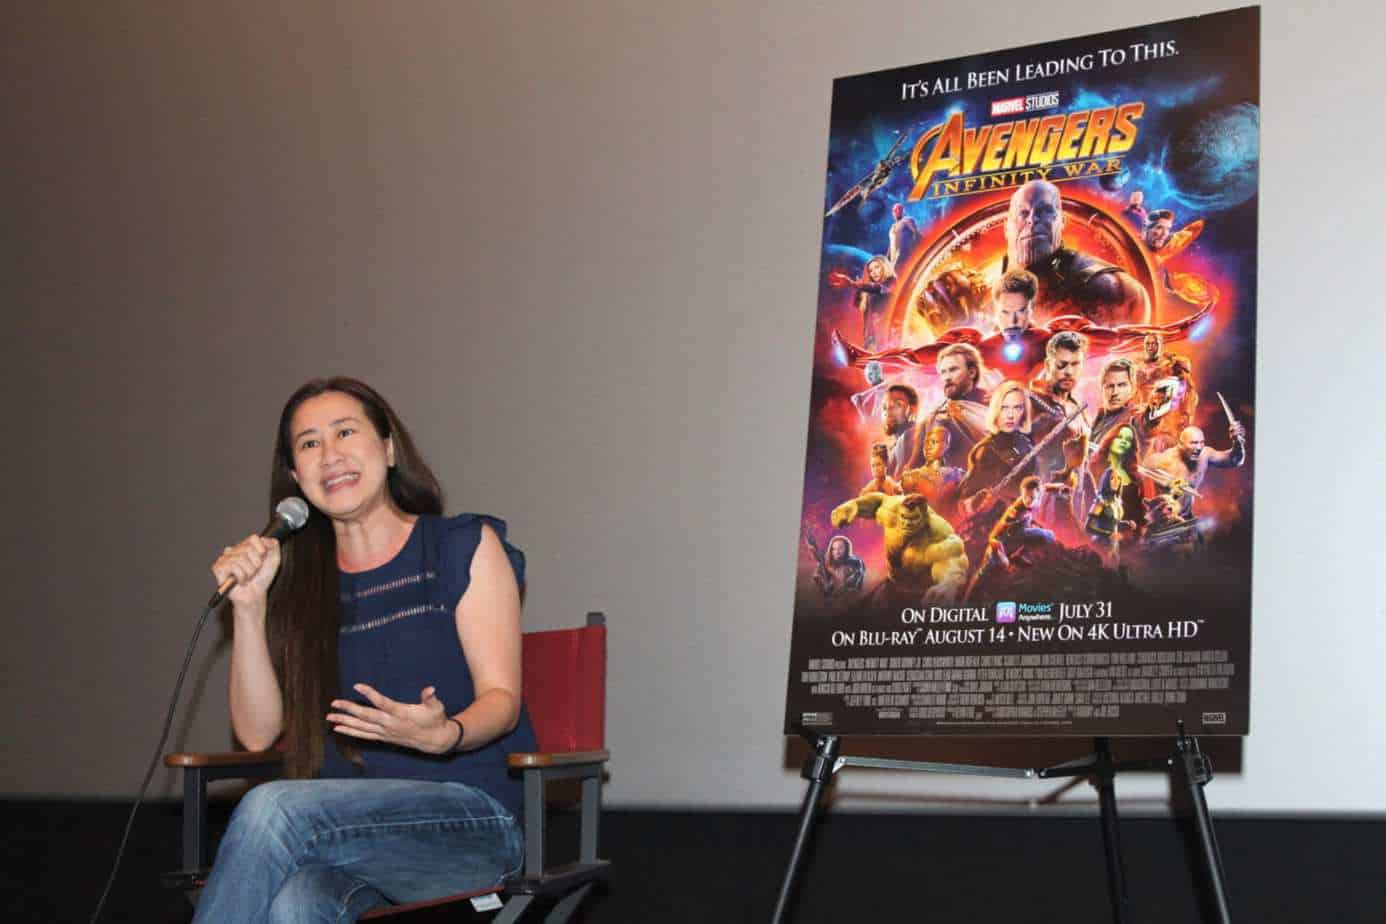 Trinh Tran Executive Producer of Avengers: Infinity War Interview shot 2